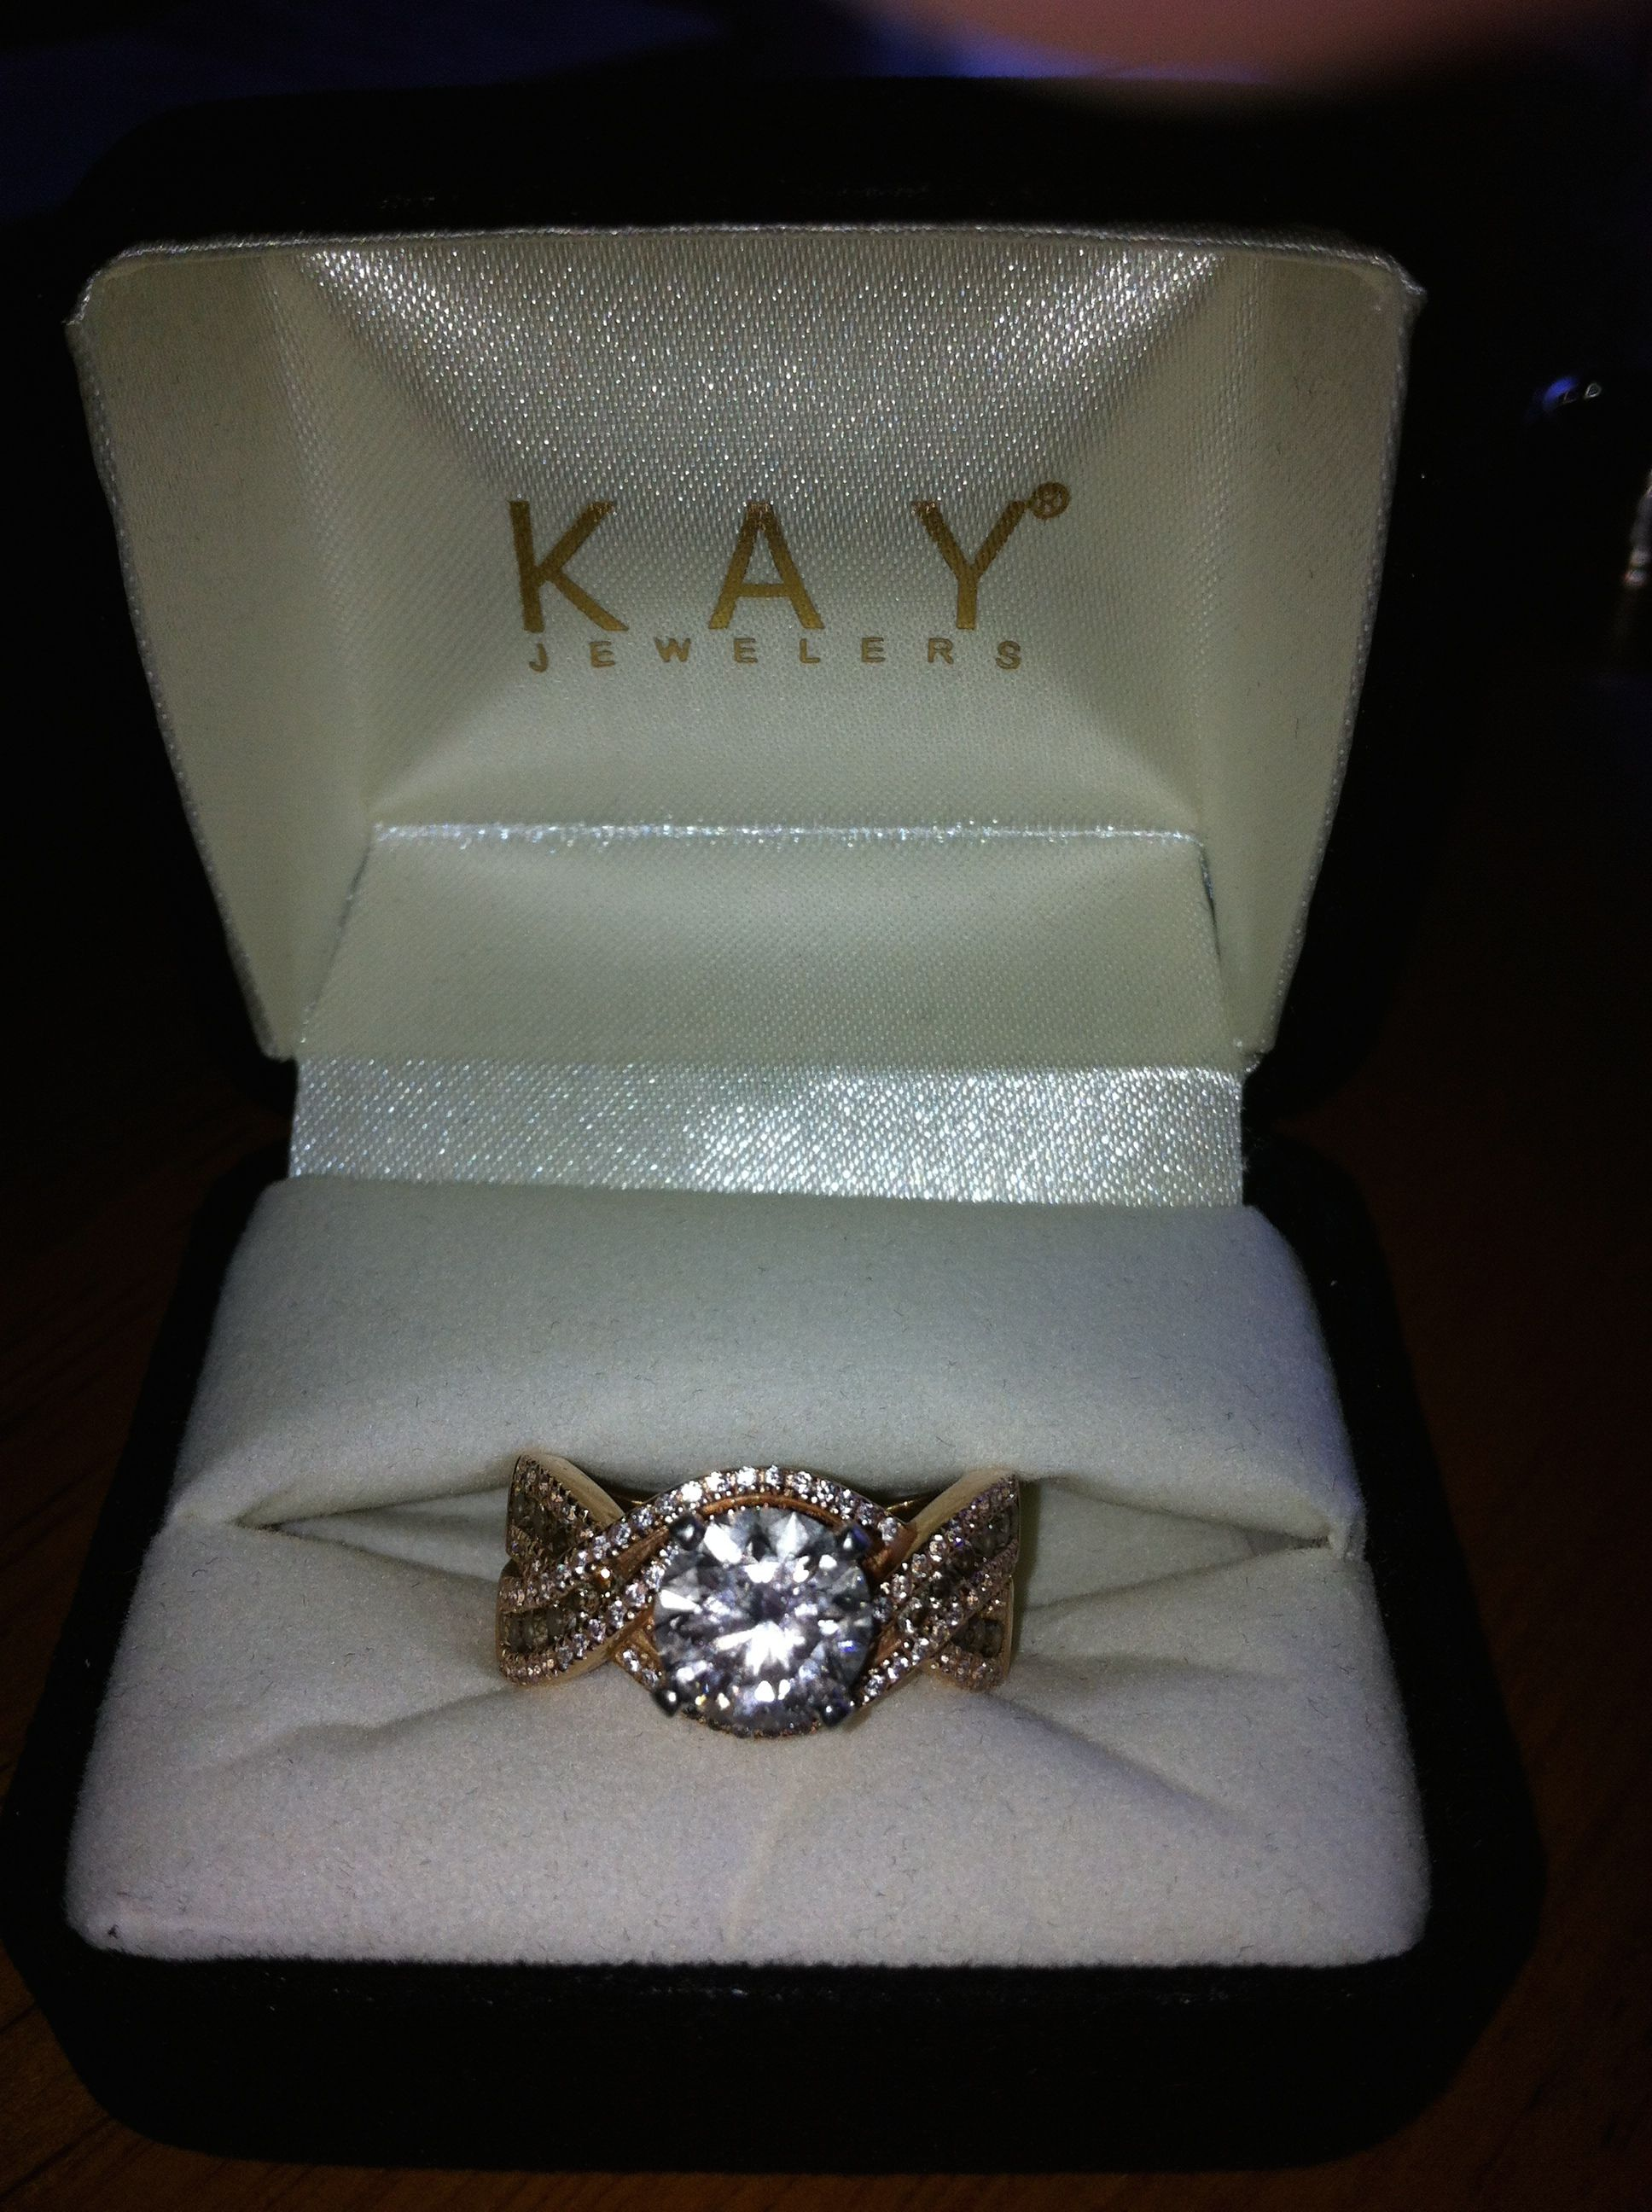 ADRIAN'S ENGAGEMENT RING